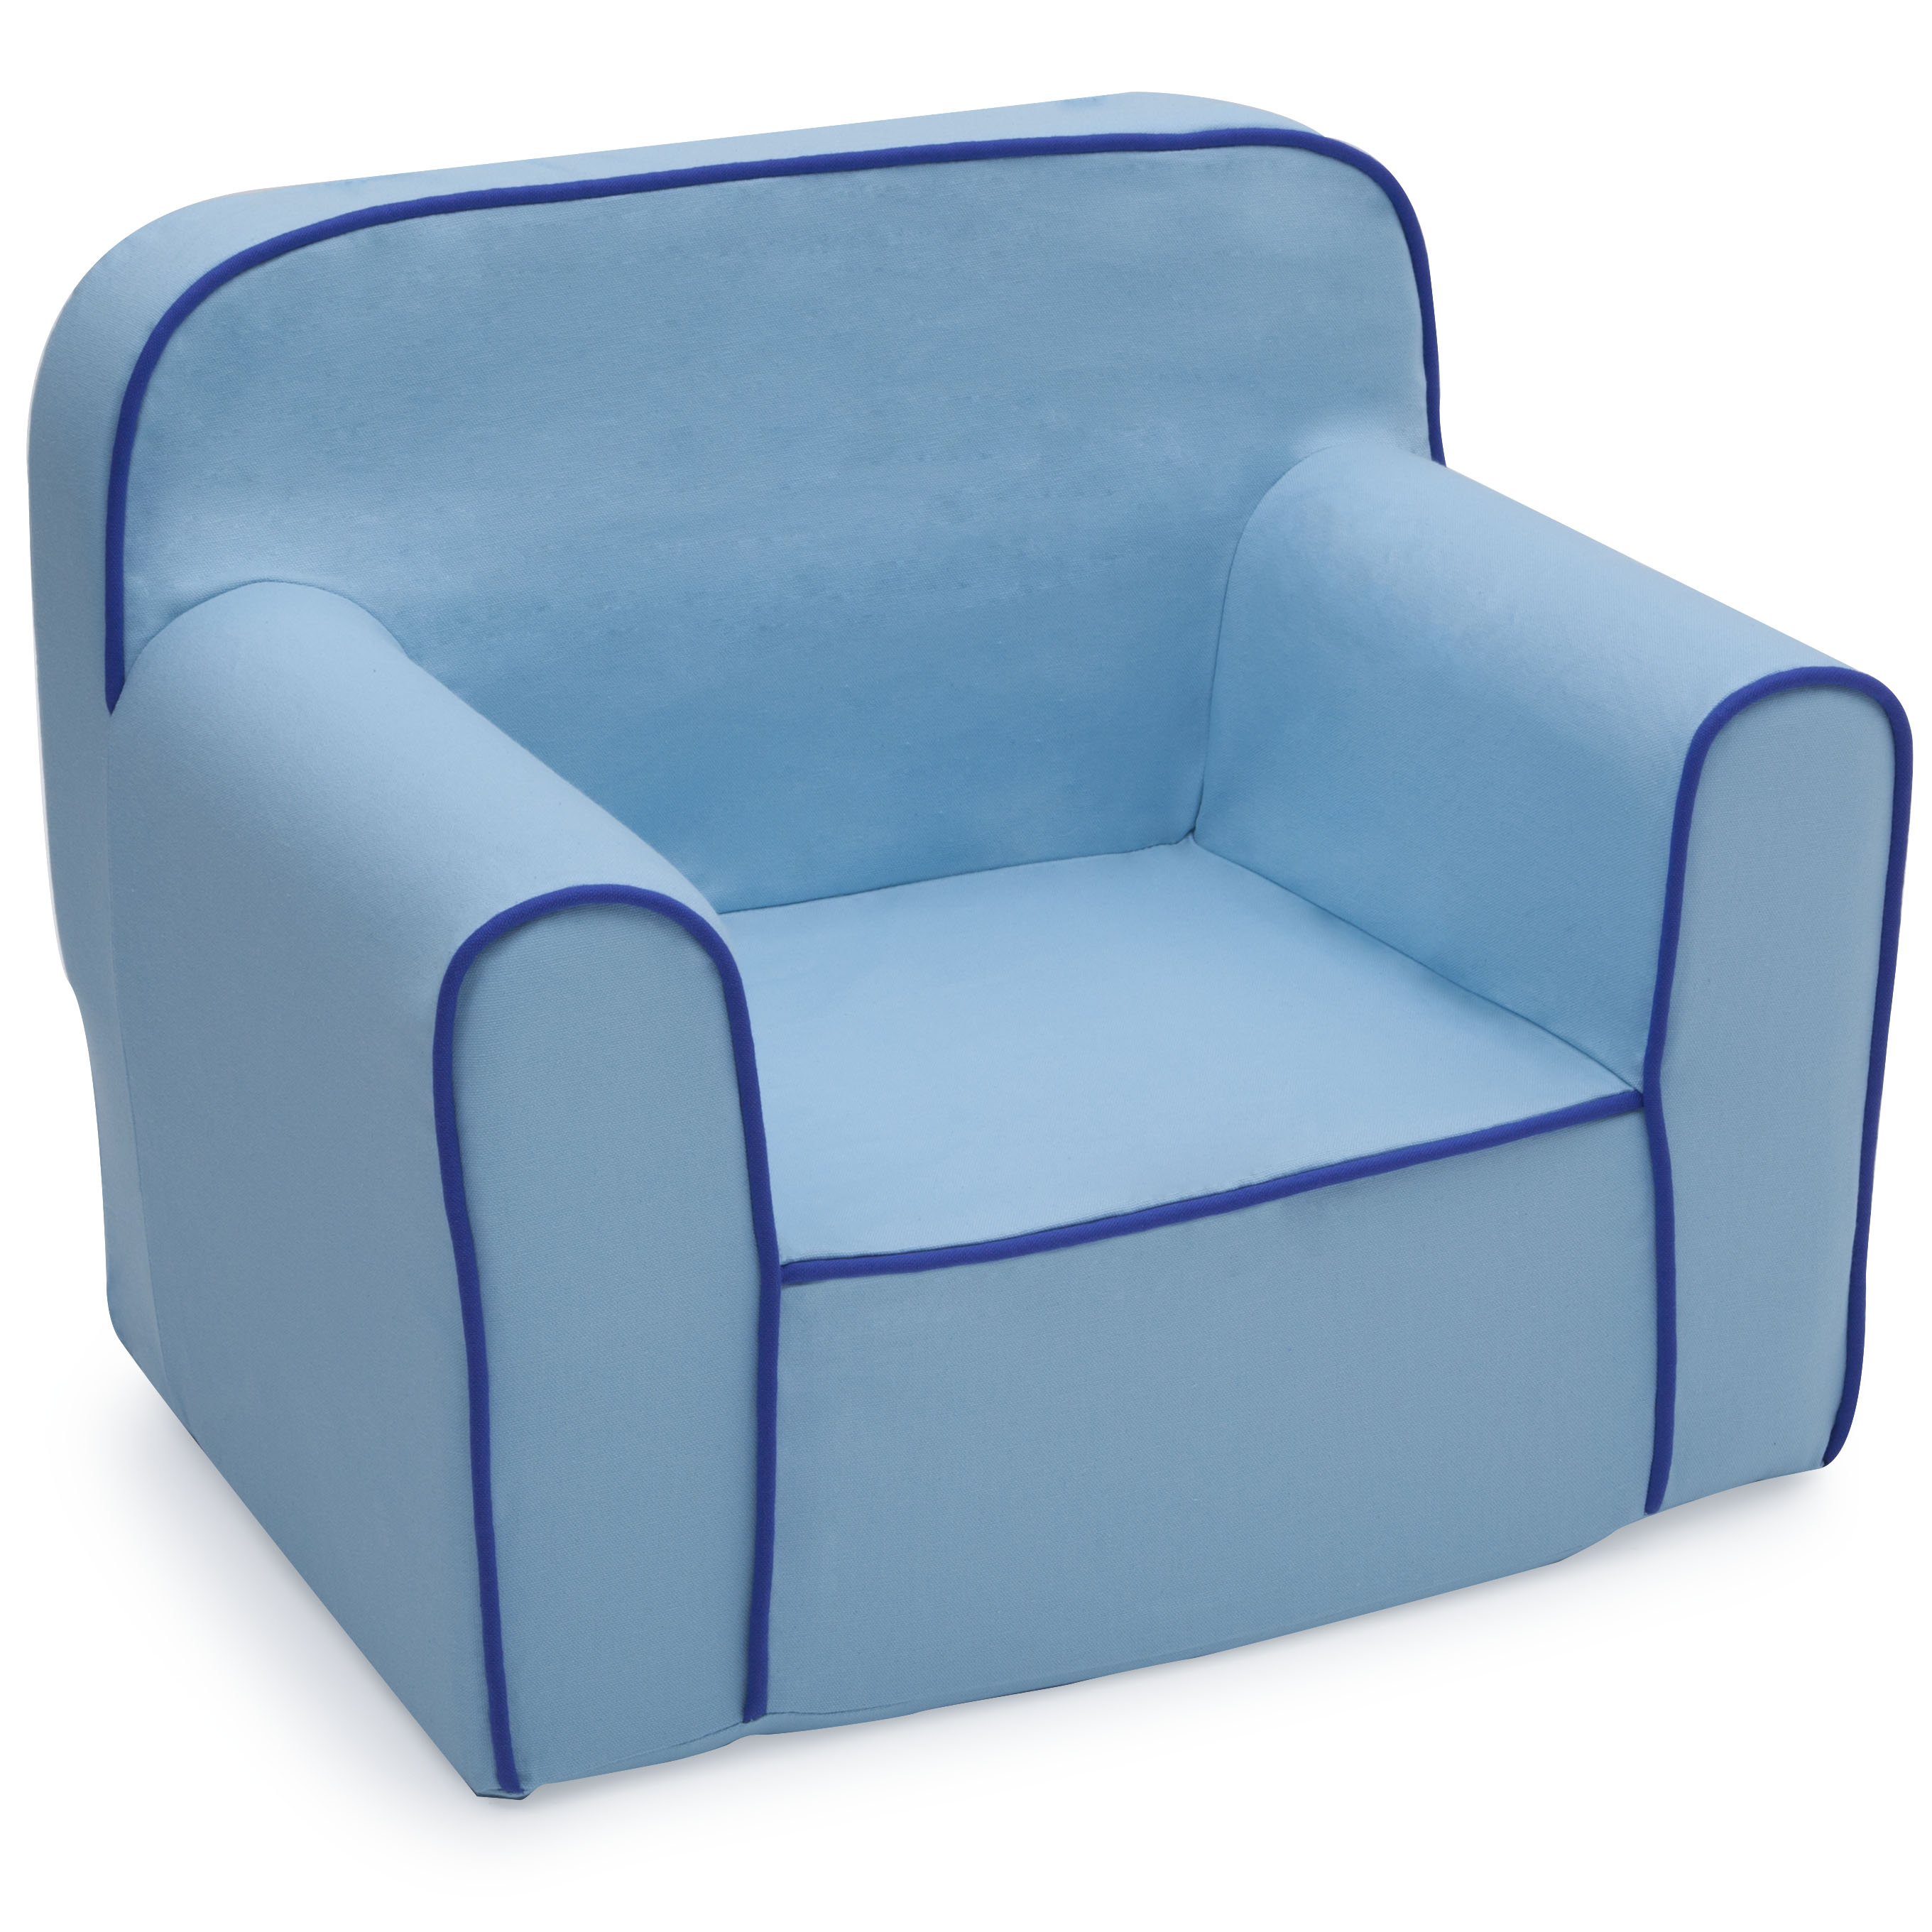 Delta Children Delta Children Foam Snuggle Chair Blue